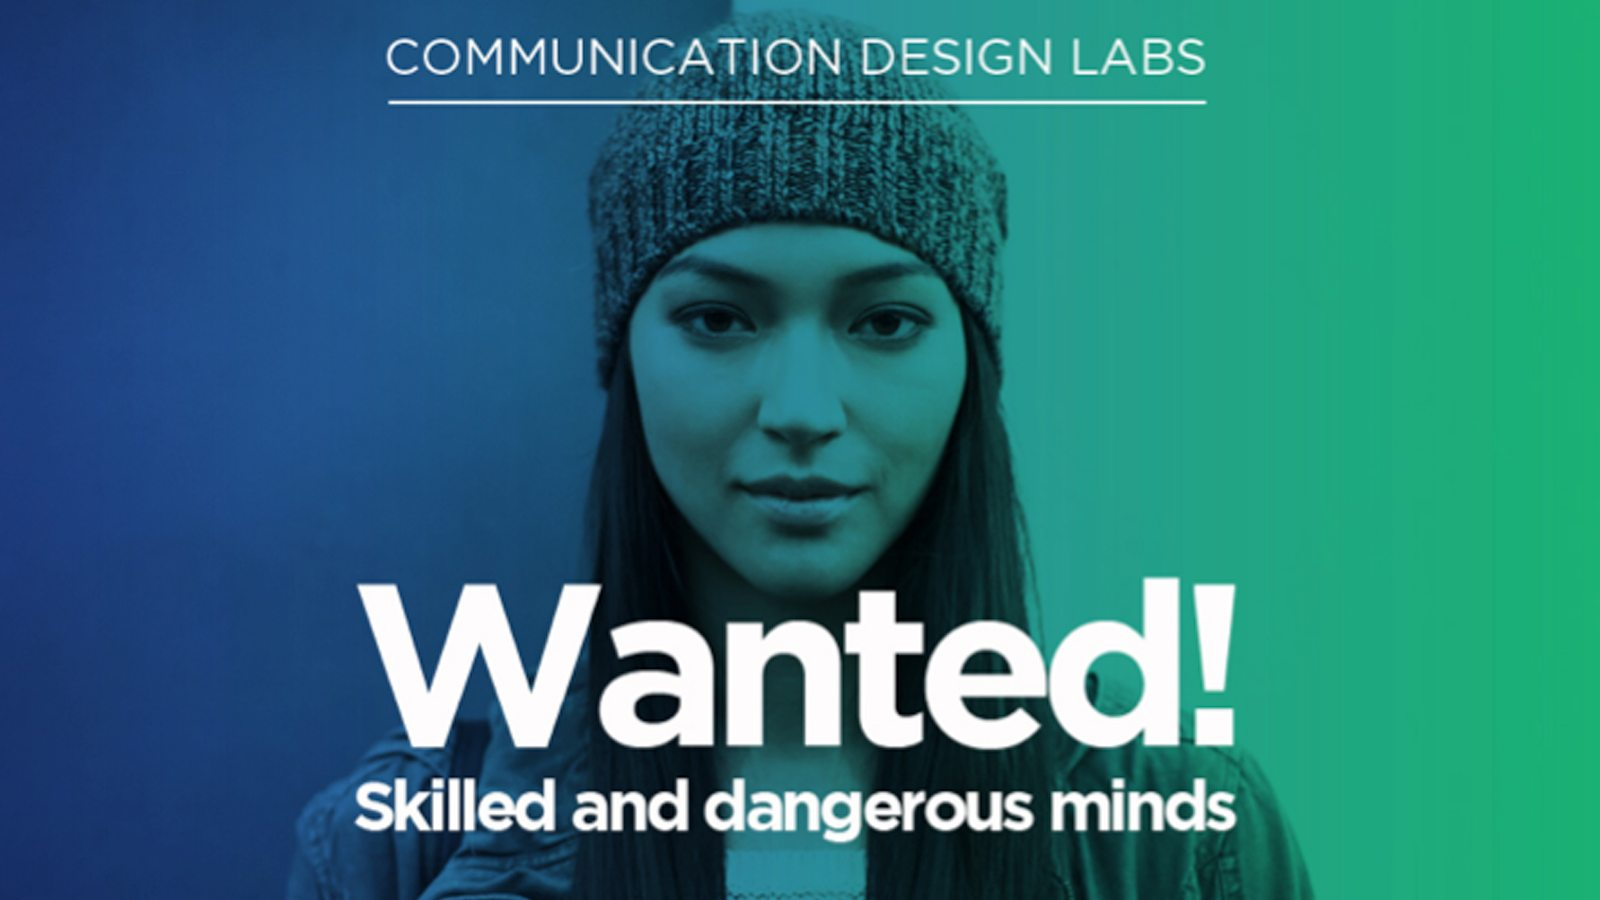 Master of Communication Design Labs